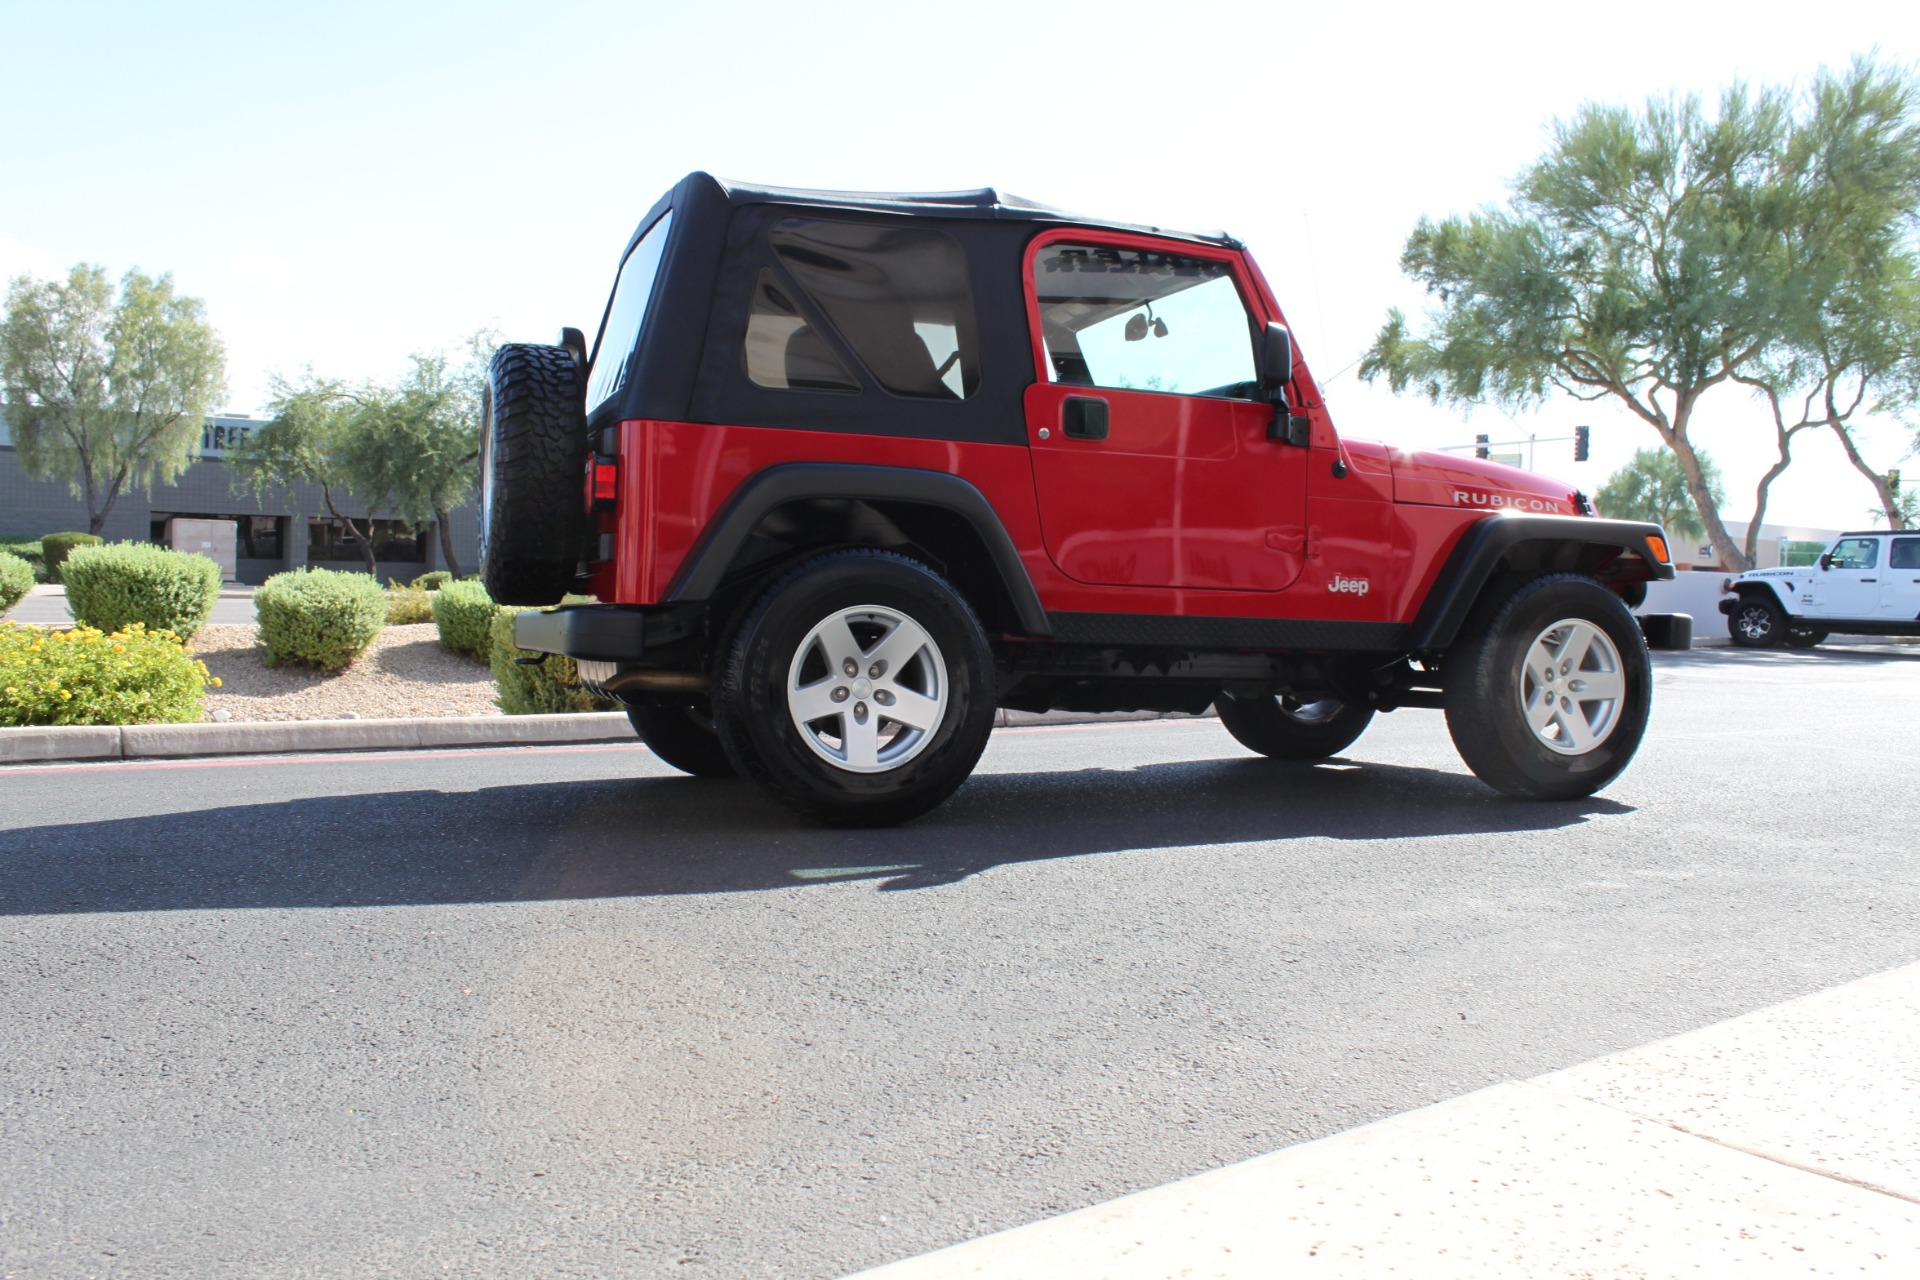 Used-2006-Jeep-Wrangler-Rubicon-Camaro